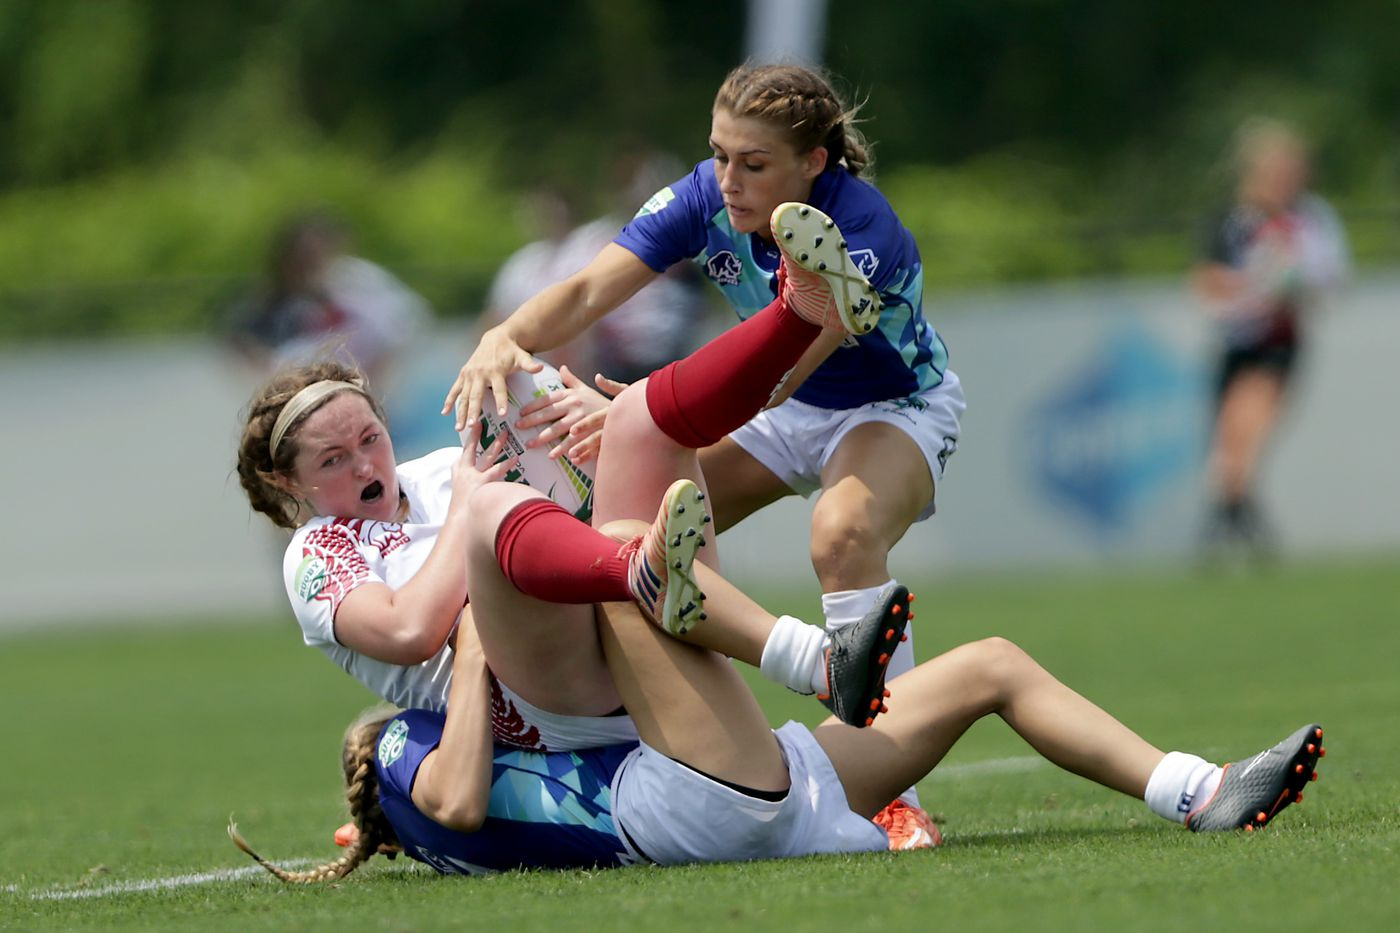 Drexel and Temple women go winless in rugby championships